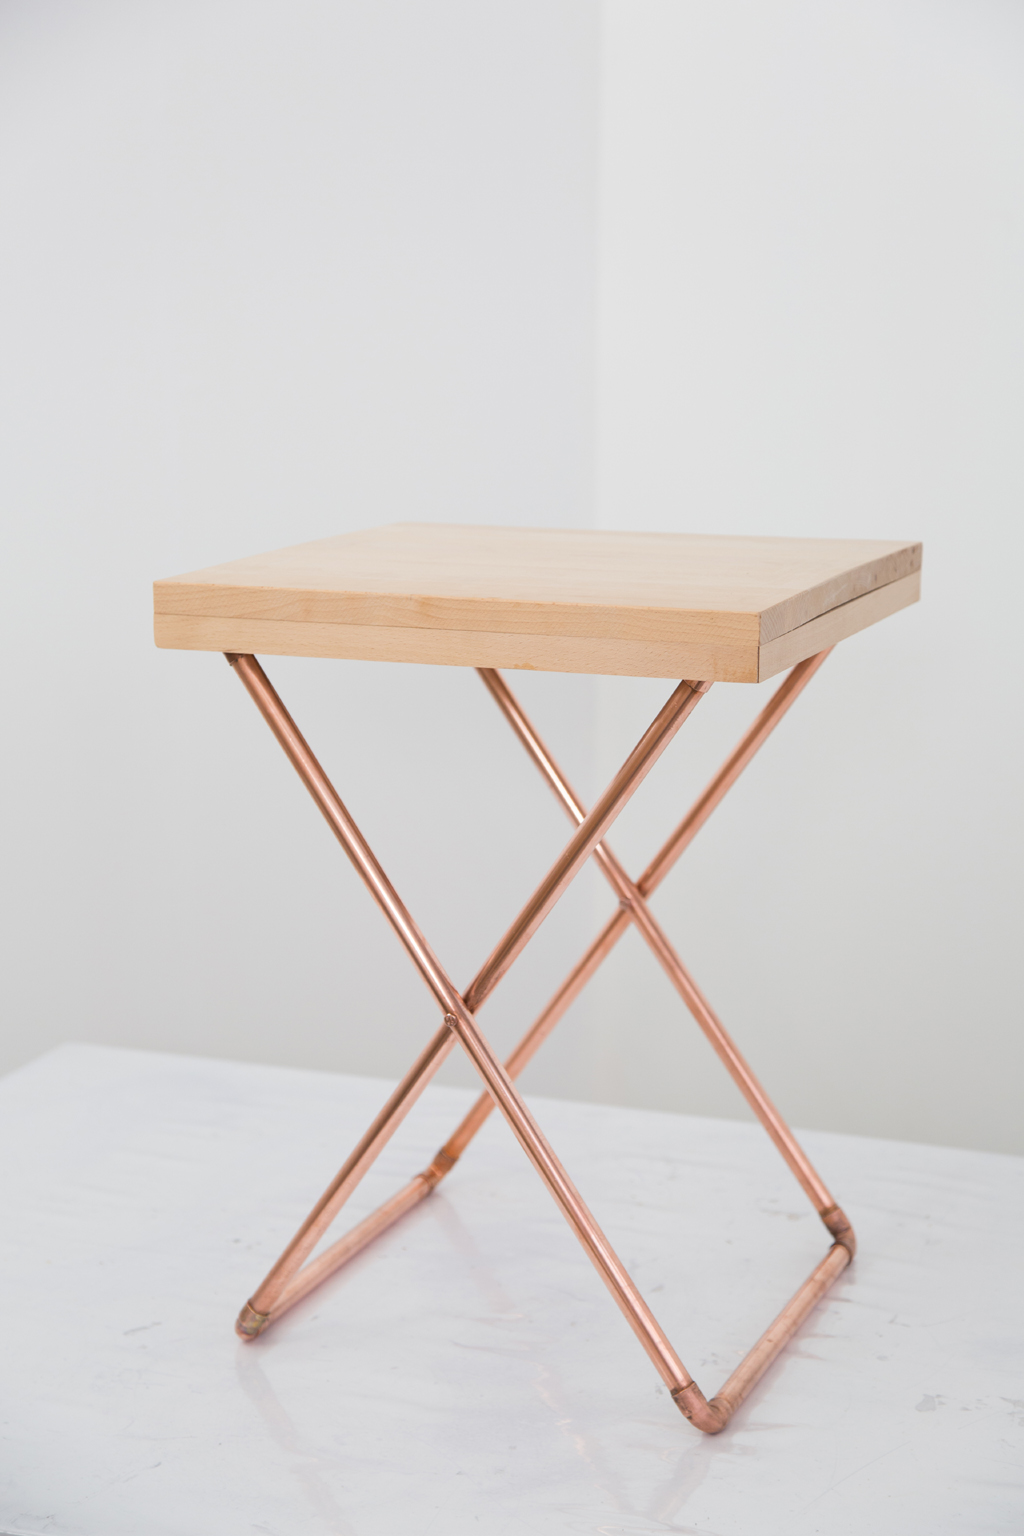 Creer une table d'appoint Cross